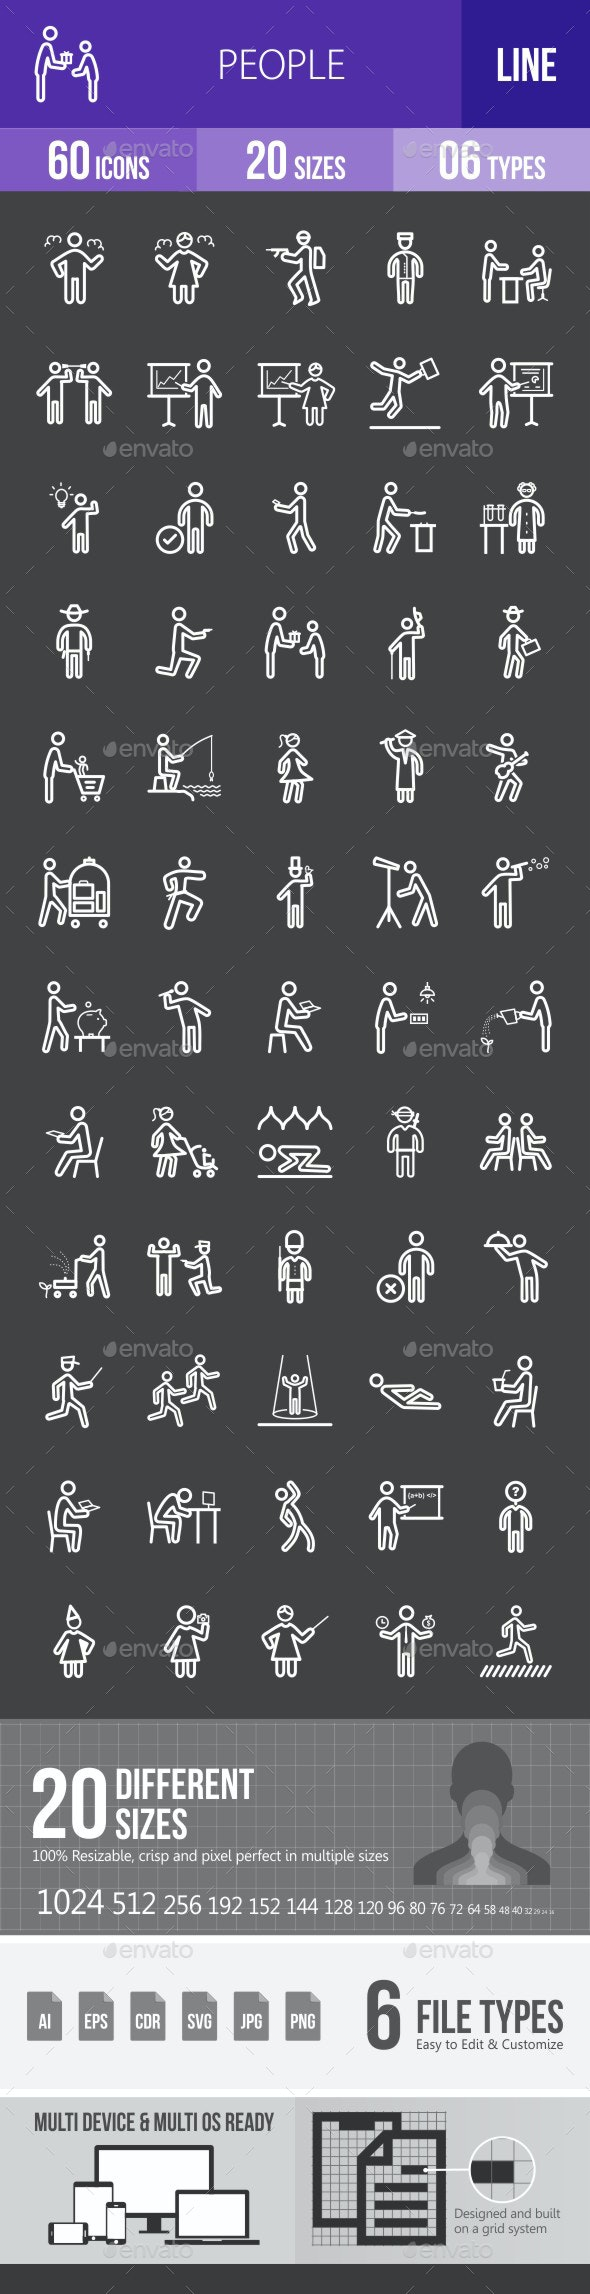 People Line Inverted Icons - Icons